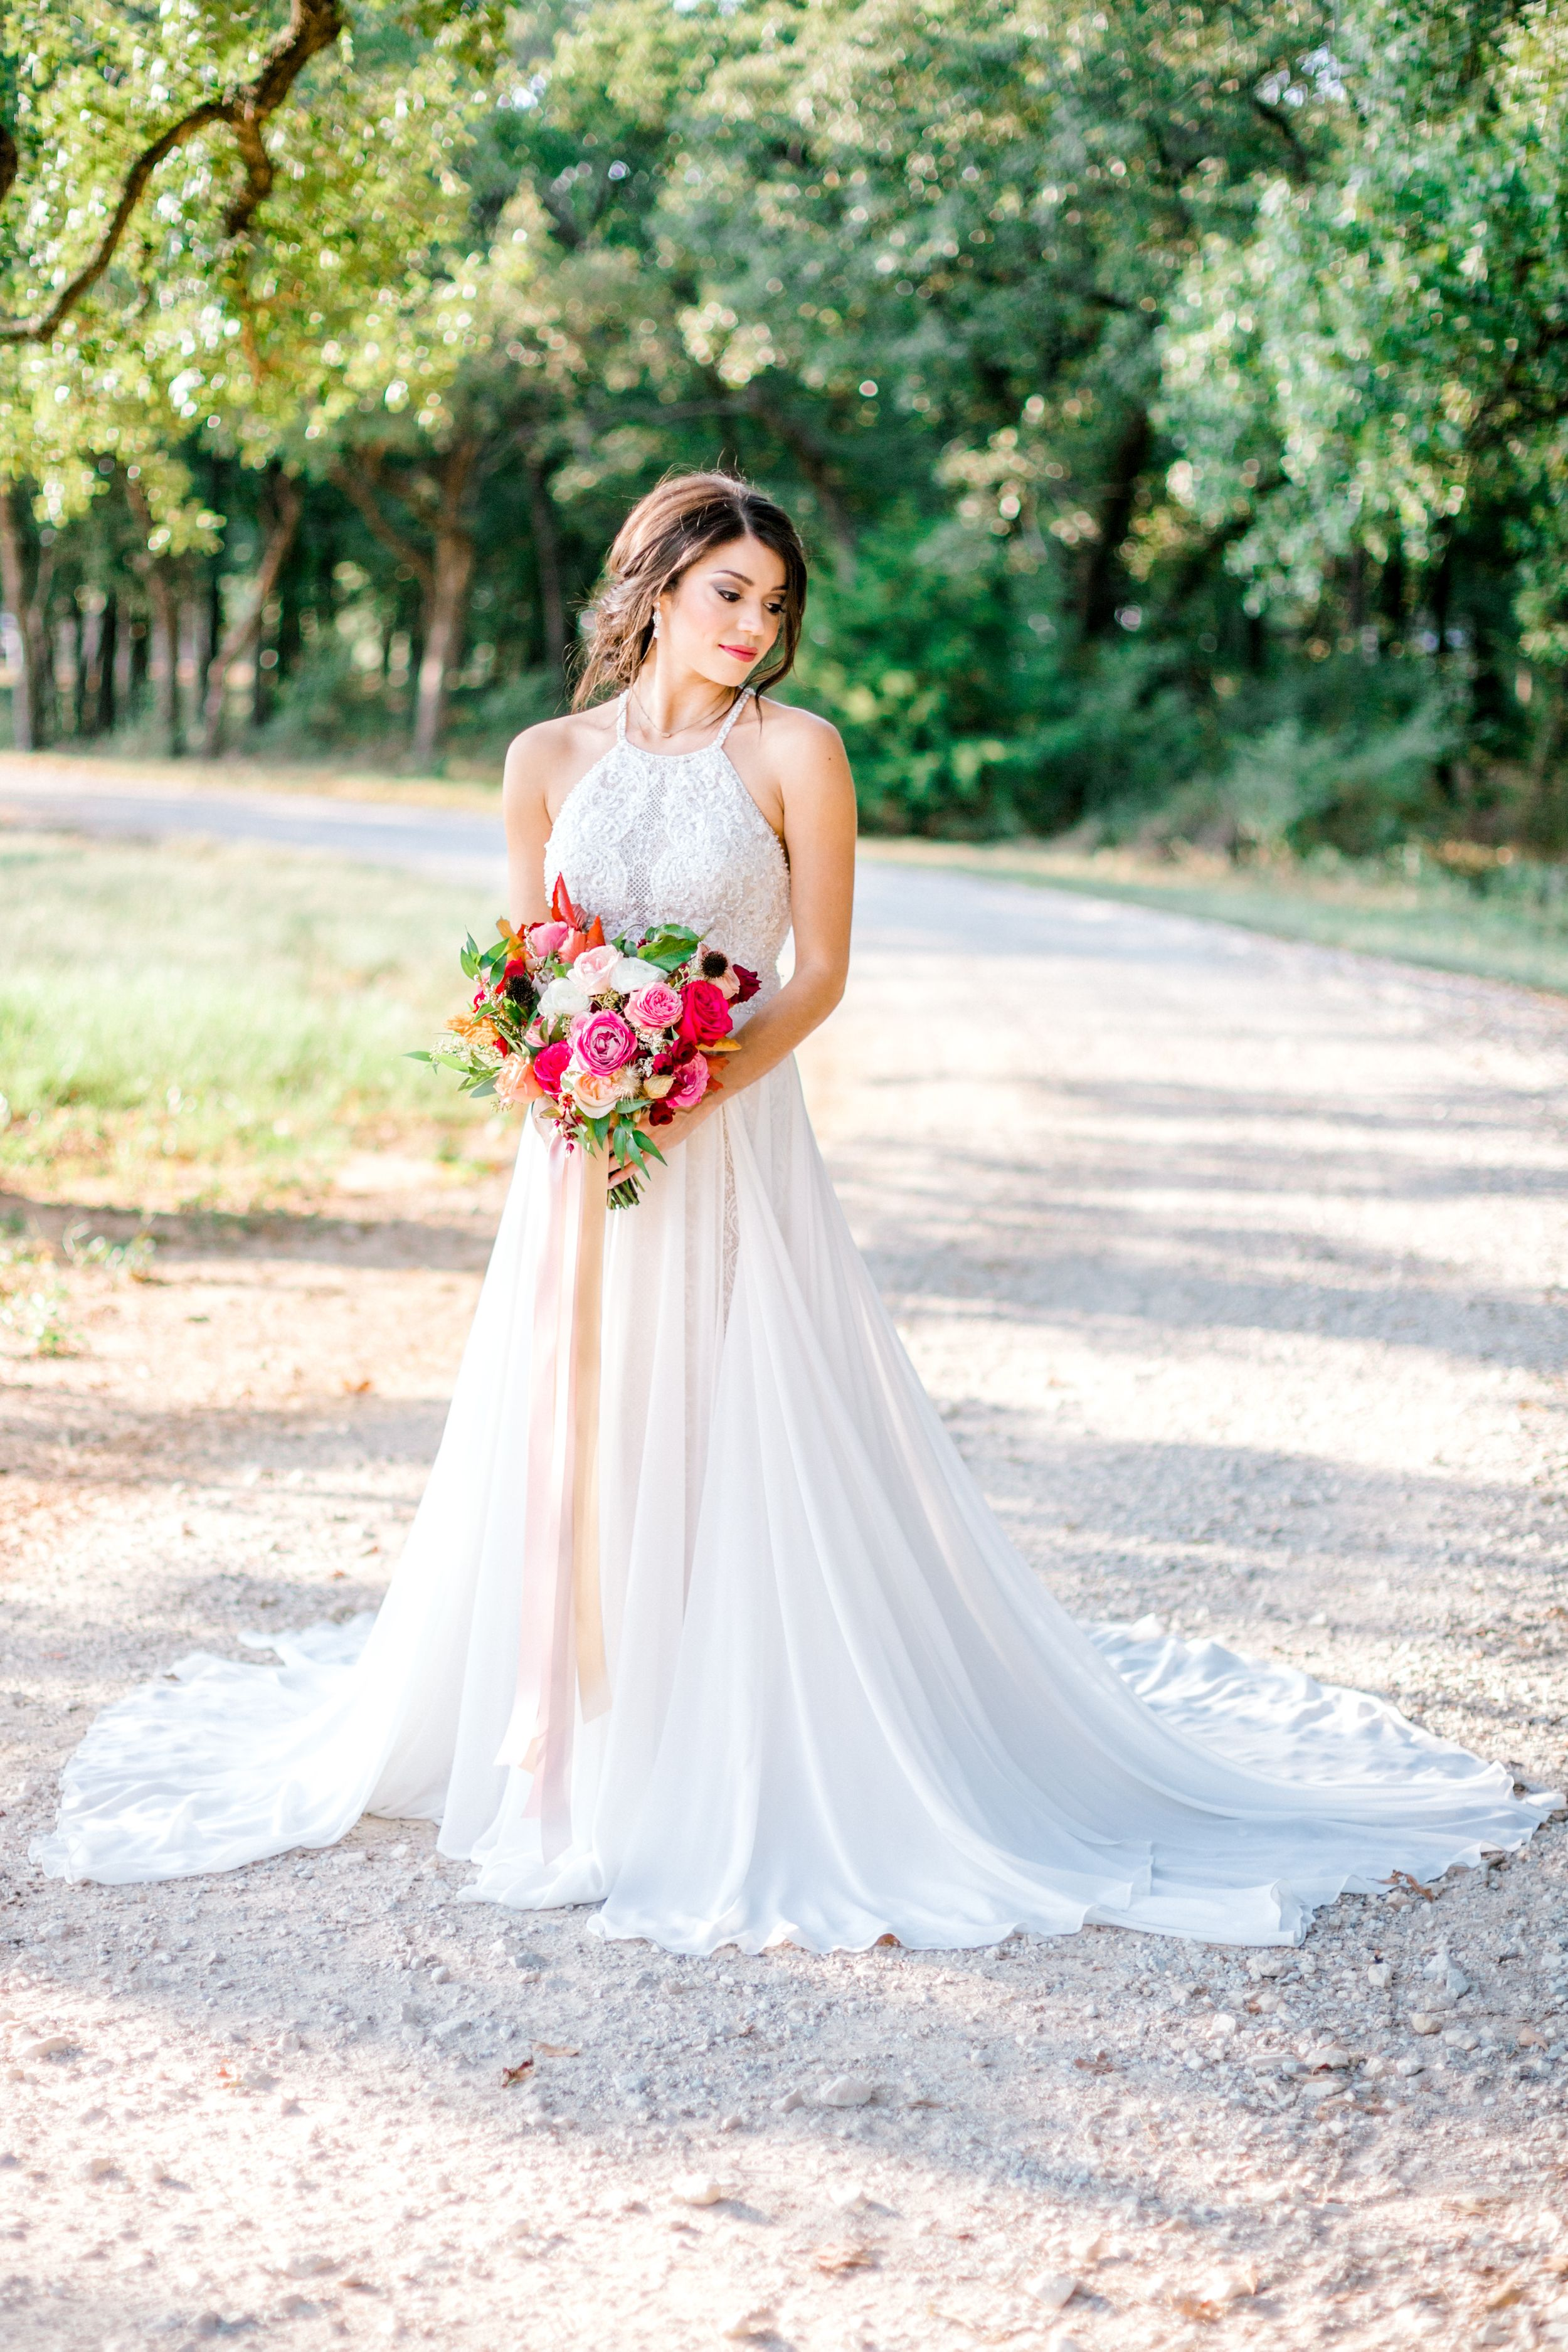 Elizabeth Couch Photography | Dallas Fort Worth Wedding Photographer | summer bride Bella cavalli tr floral